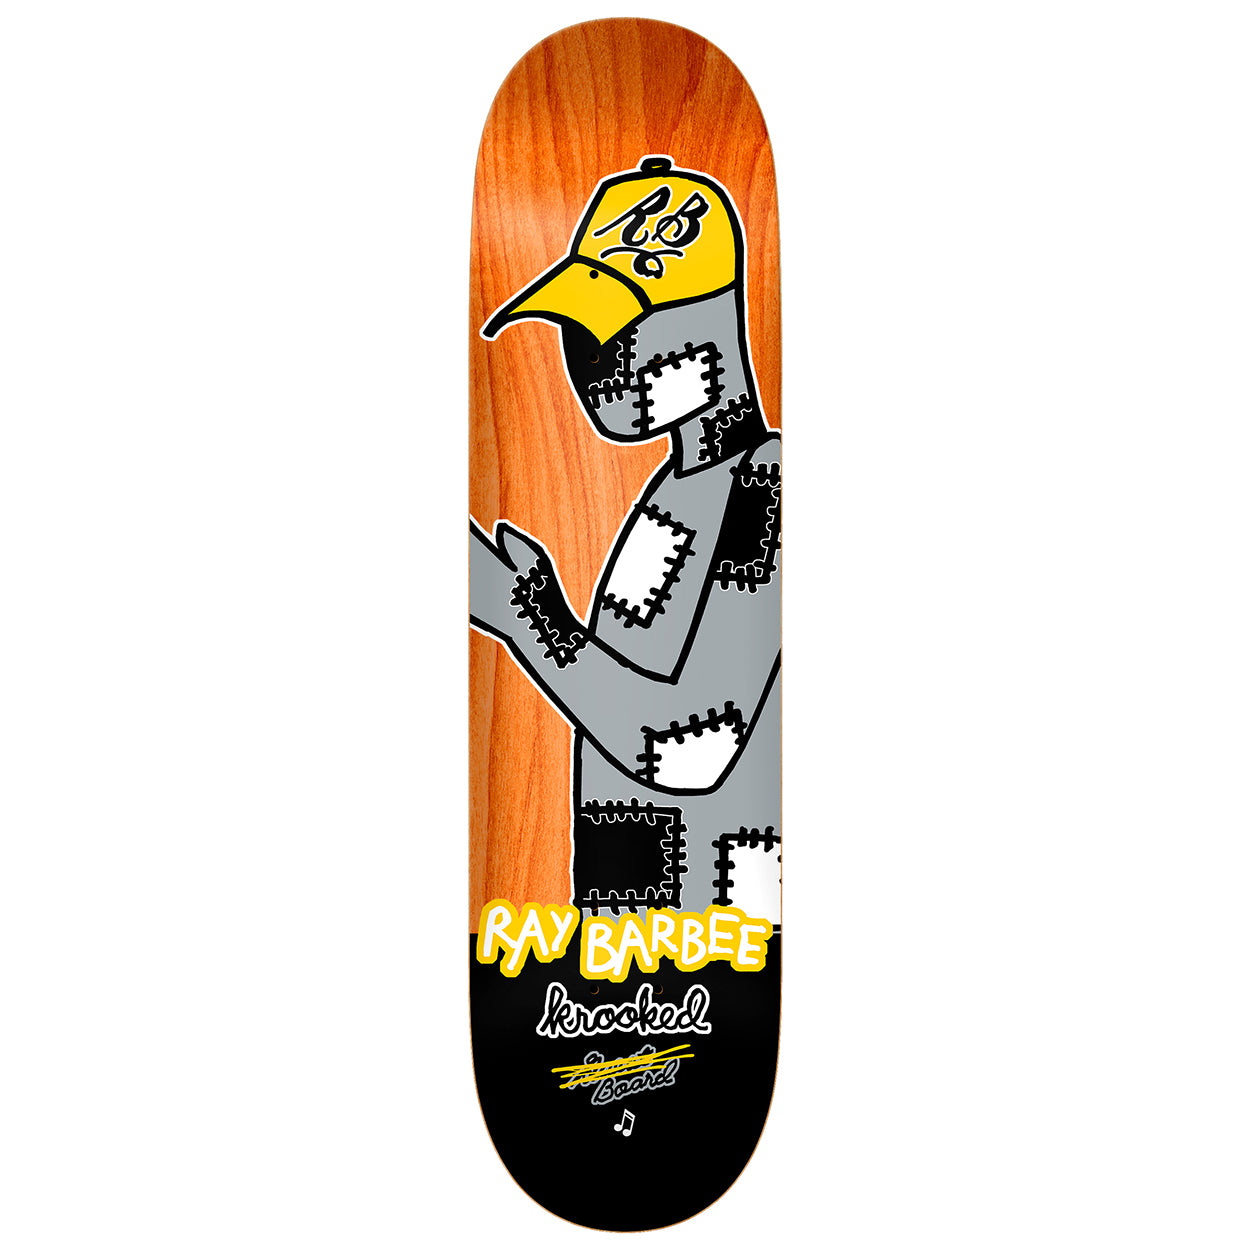 Krooked Ray Barbee Redux Deck 8.25""